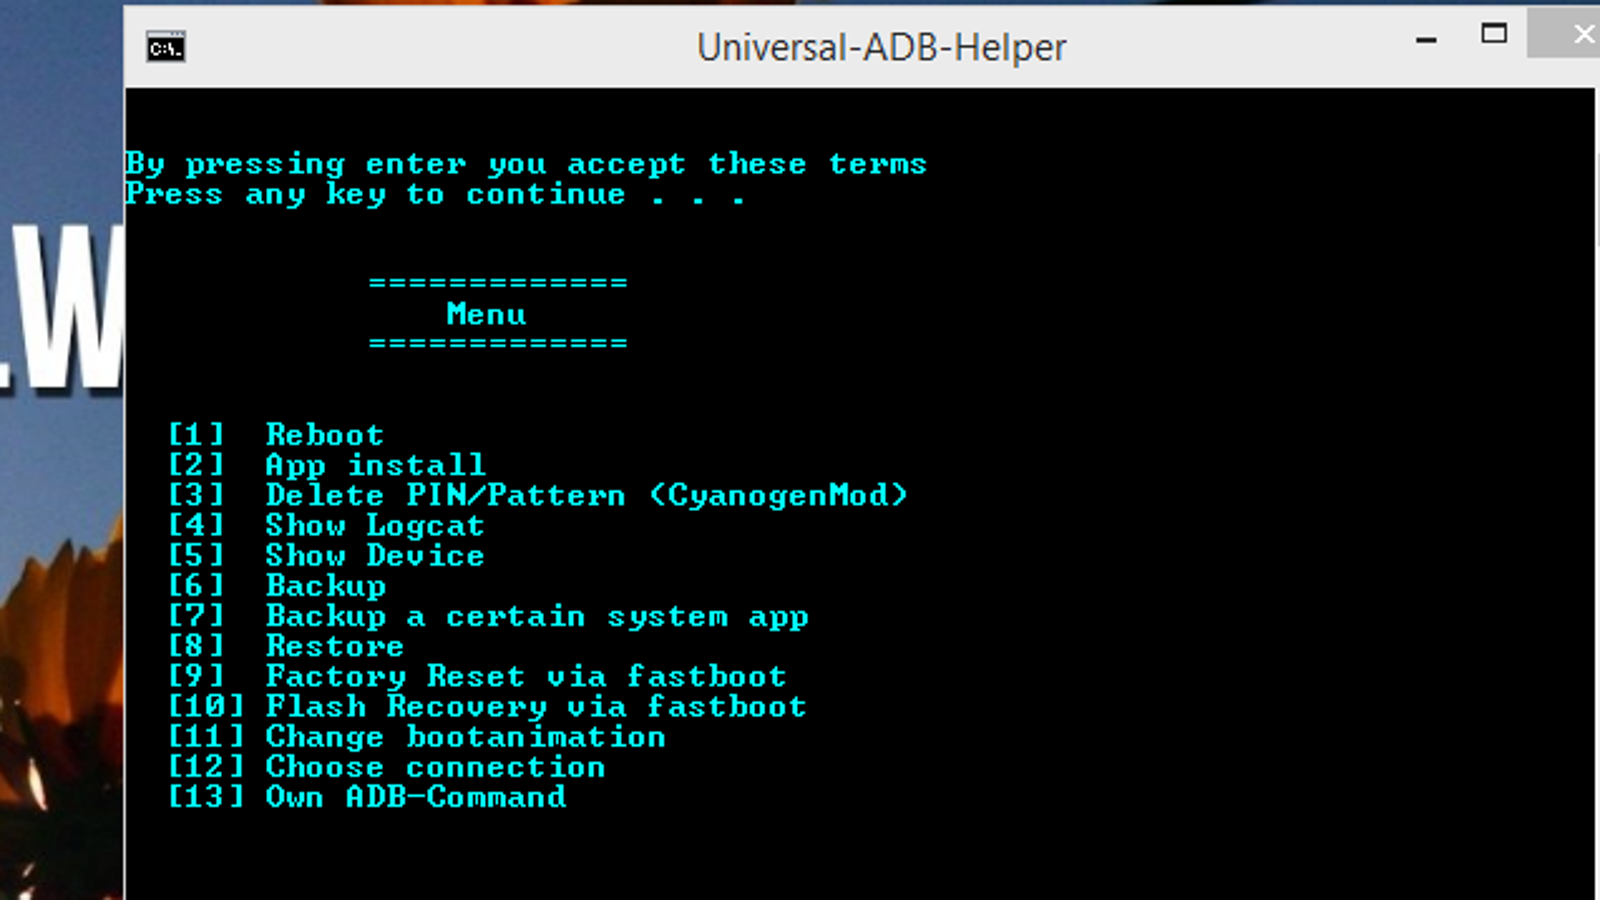 Universal ADB Utility Simplifies Common Android Command Line